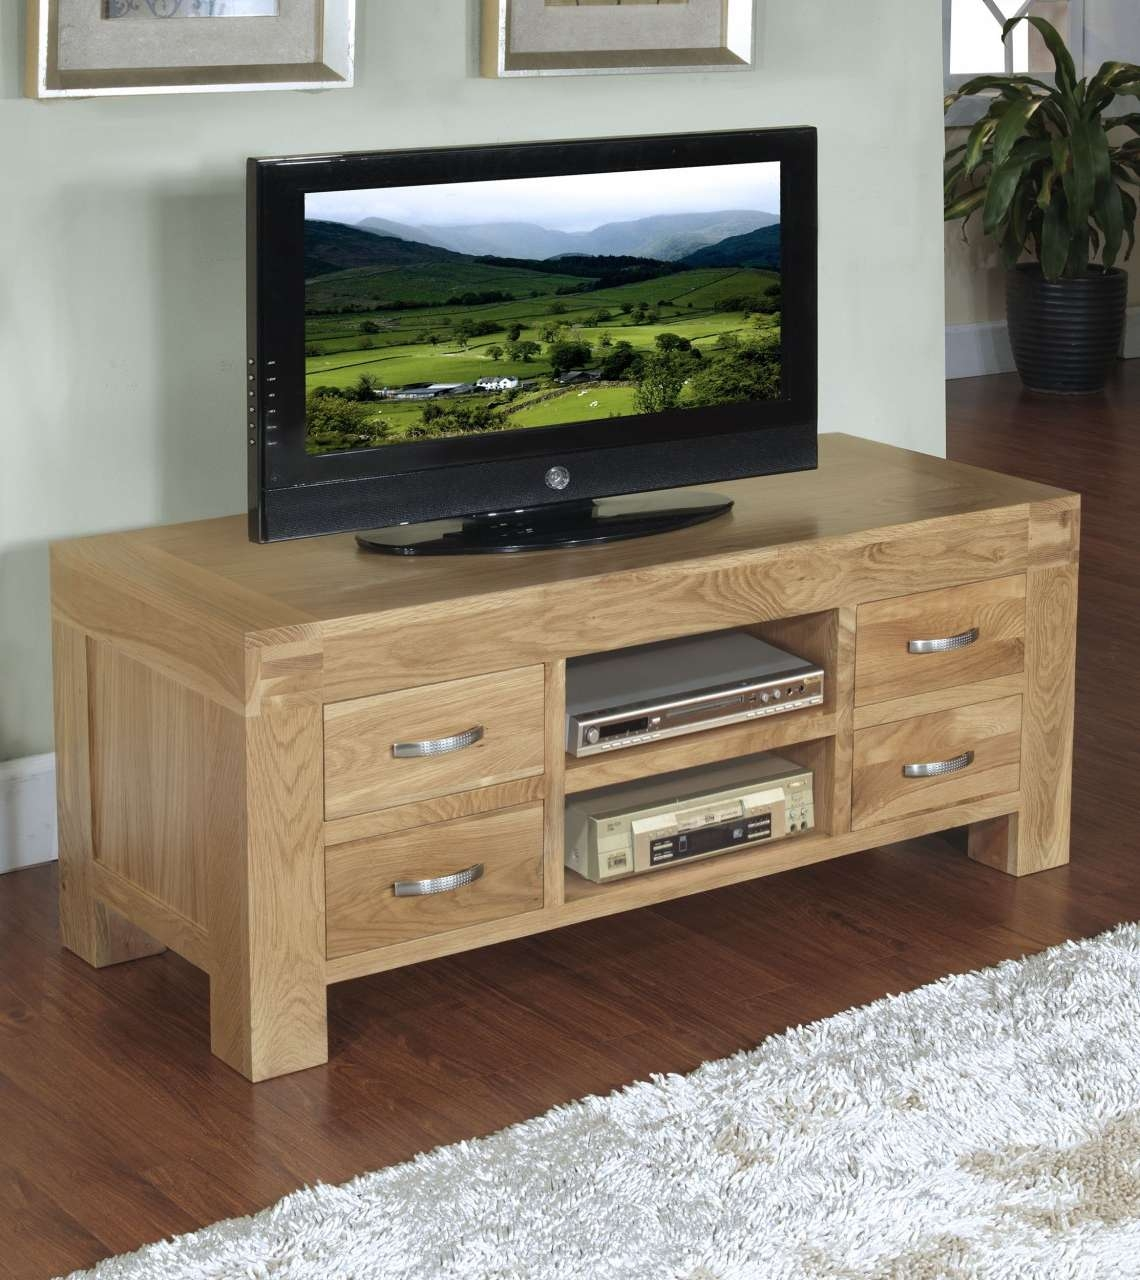 Oak Television Cabinet | Centerfordemocracy Inside Contemporary Oak Tv Stands (View 7 of 15)